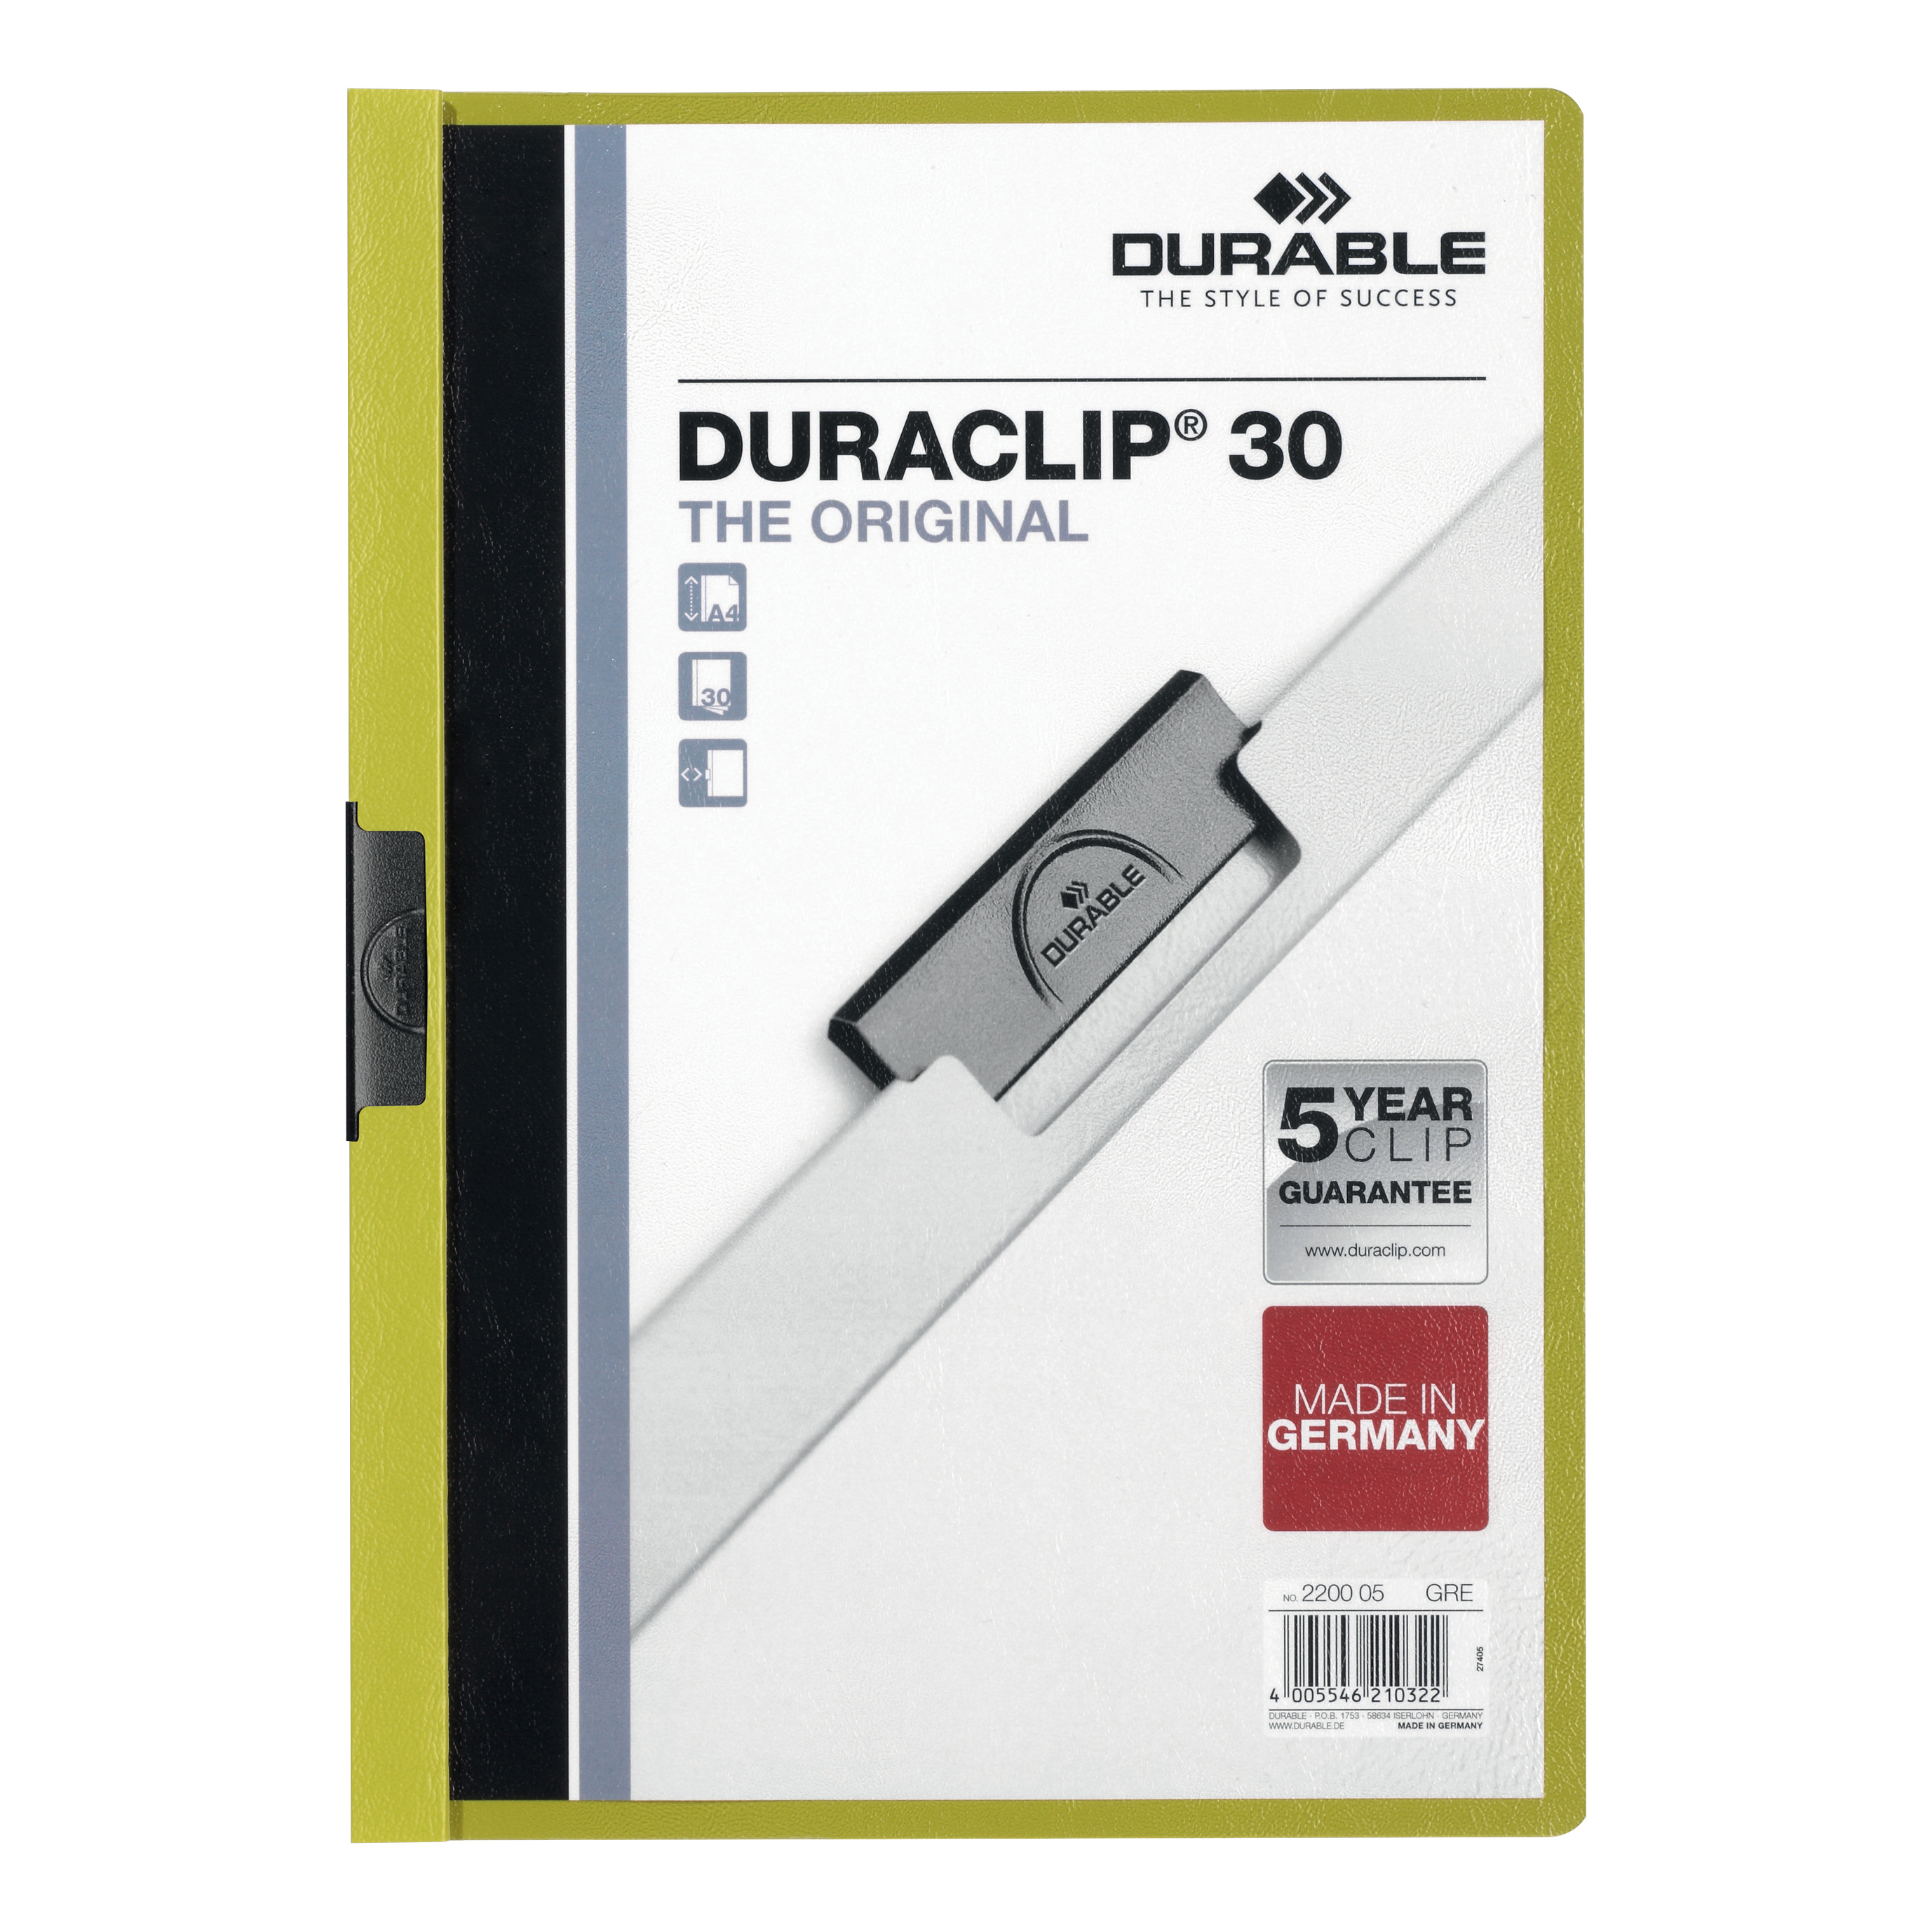 Durable Duraclip Folder PVC Clear Front 3mm Spine for 30 Sheets A4 Green Ref 2200/05 [Pack 25]